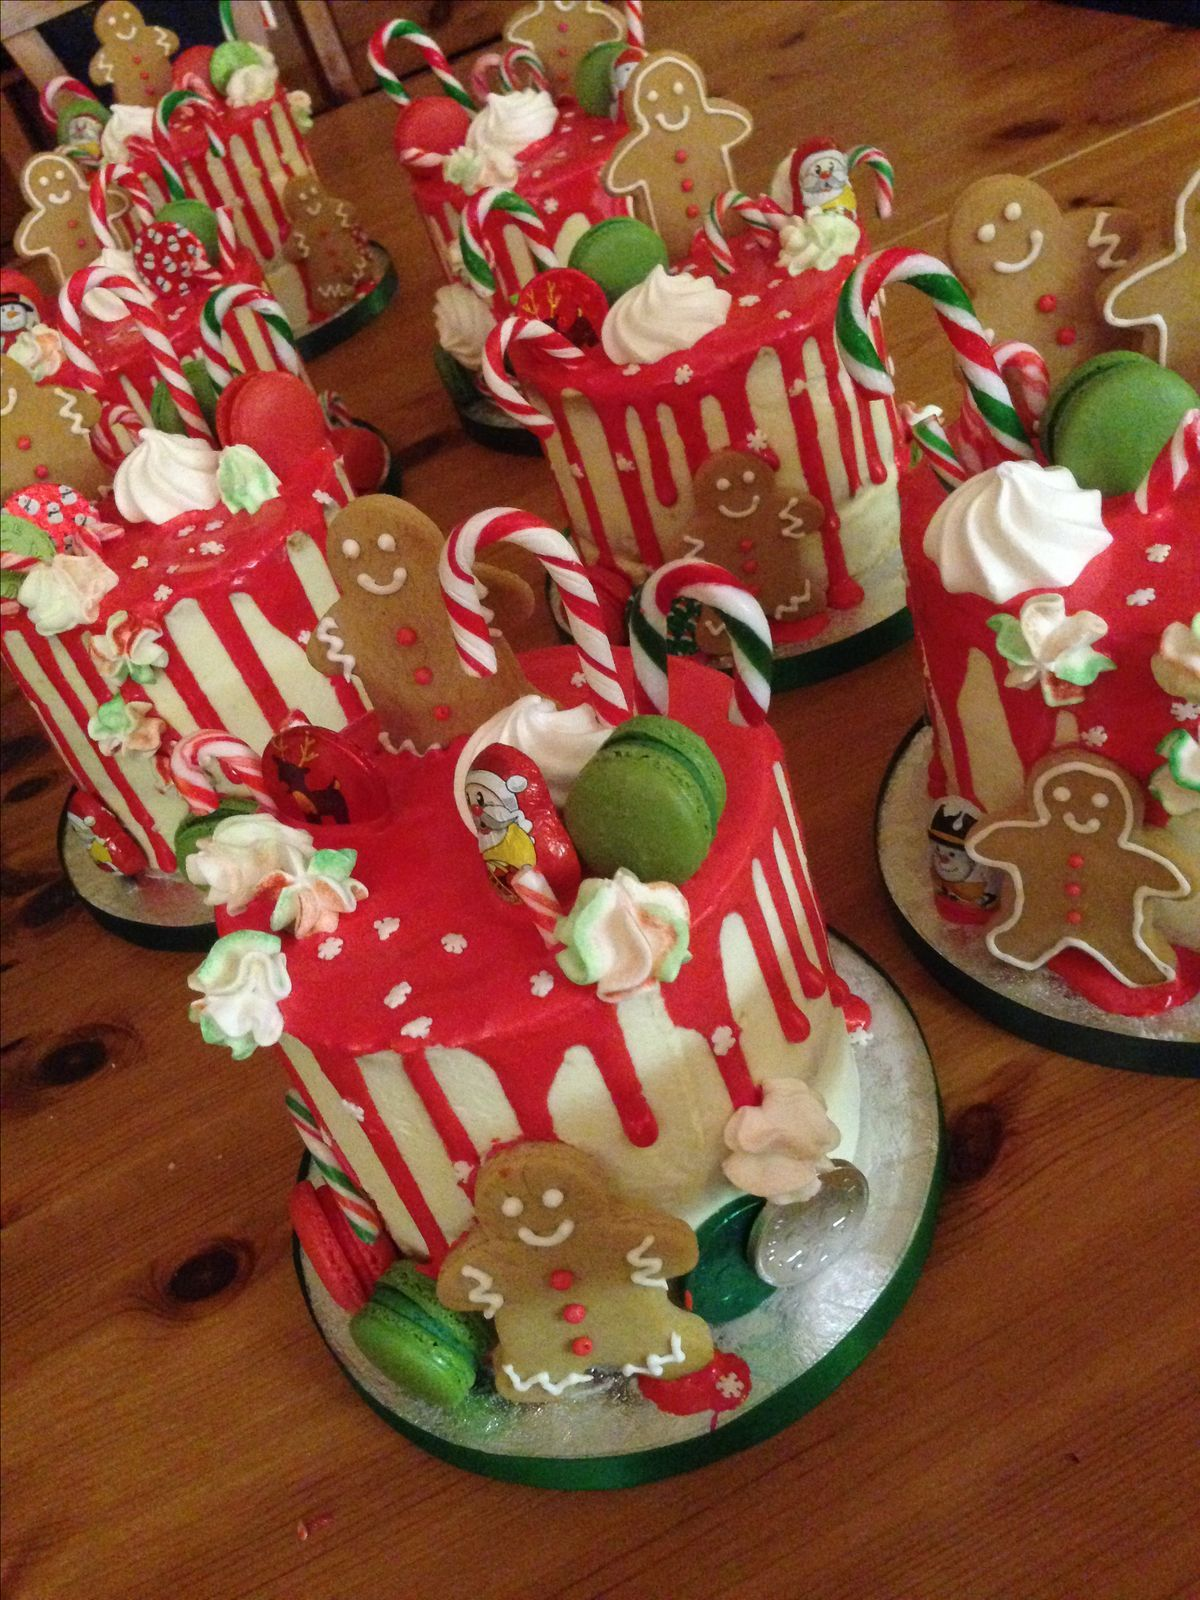 candy cane cake decorations